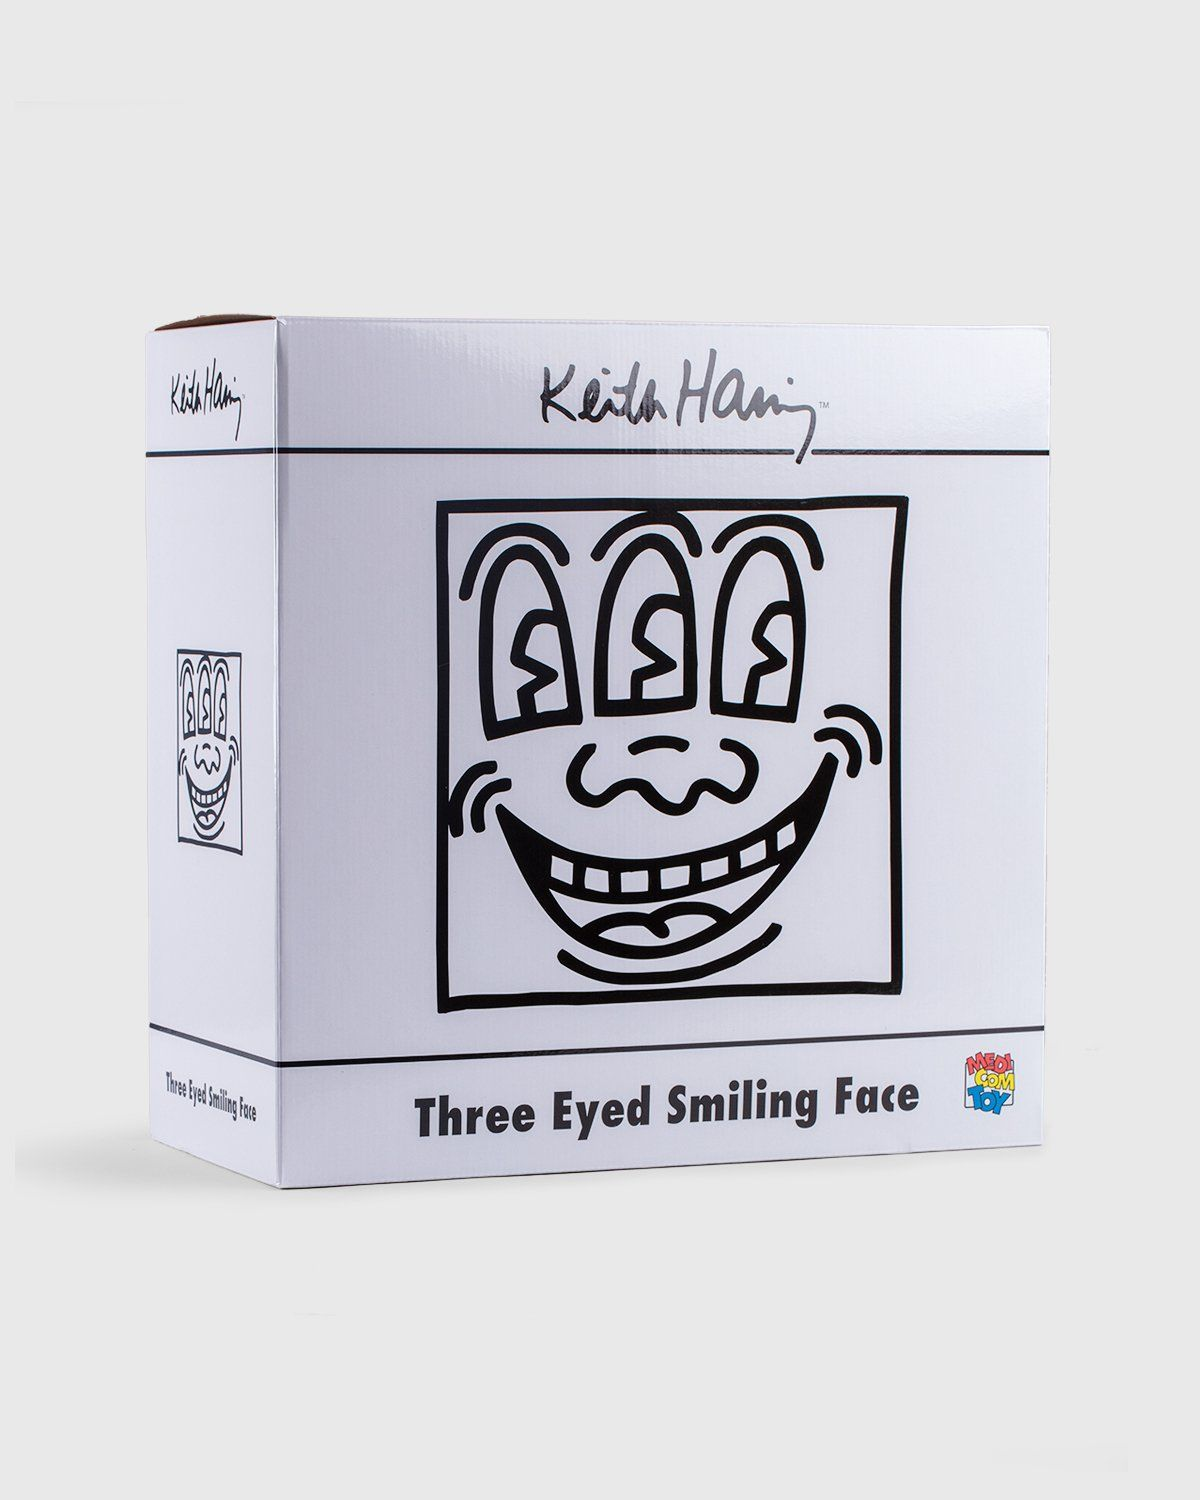 Medicom — Keith Haring Three Eyed Smiling Face Statue White - Image 5